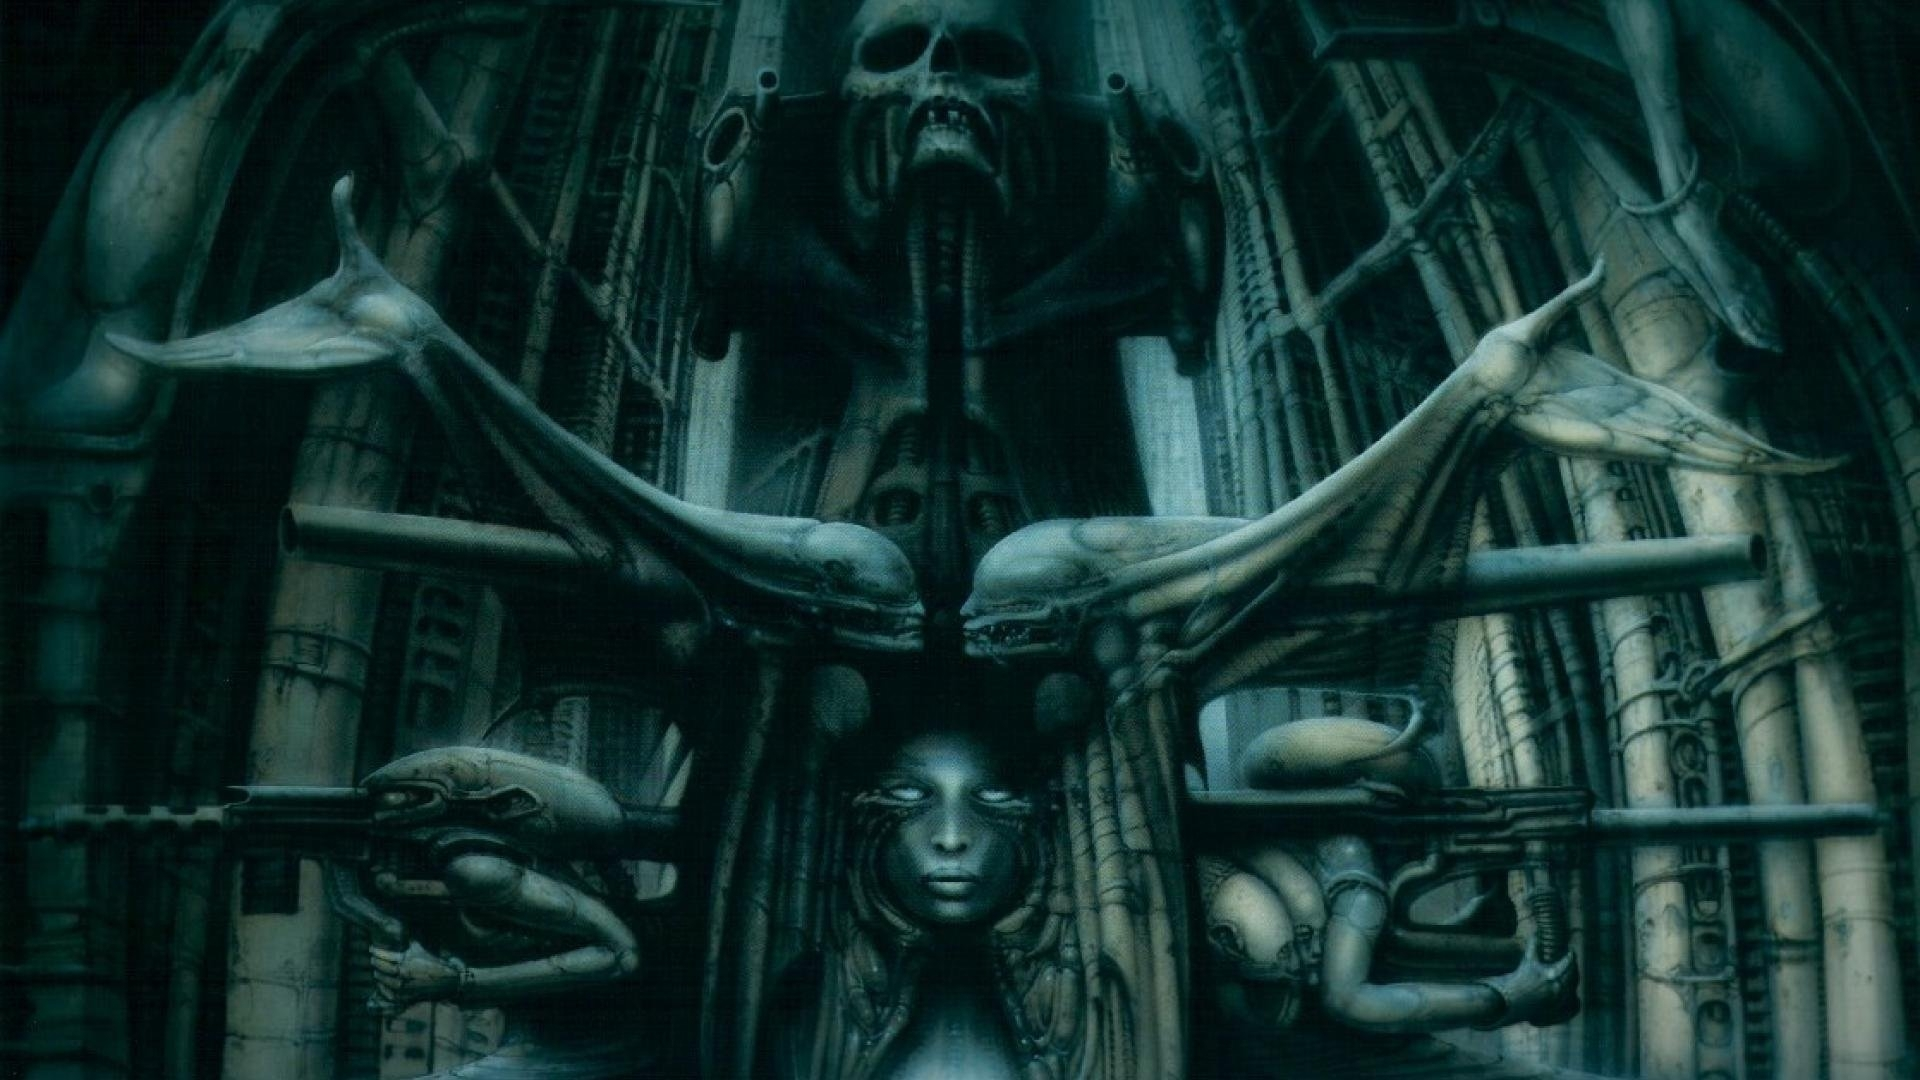 hr giger the spell - walldevil